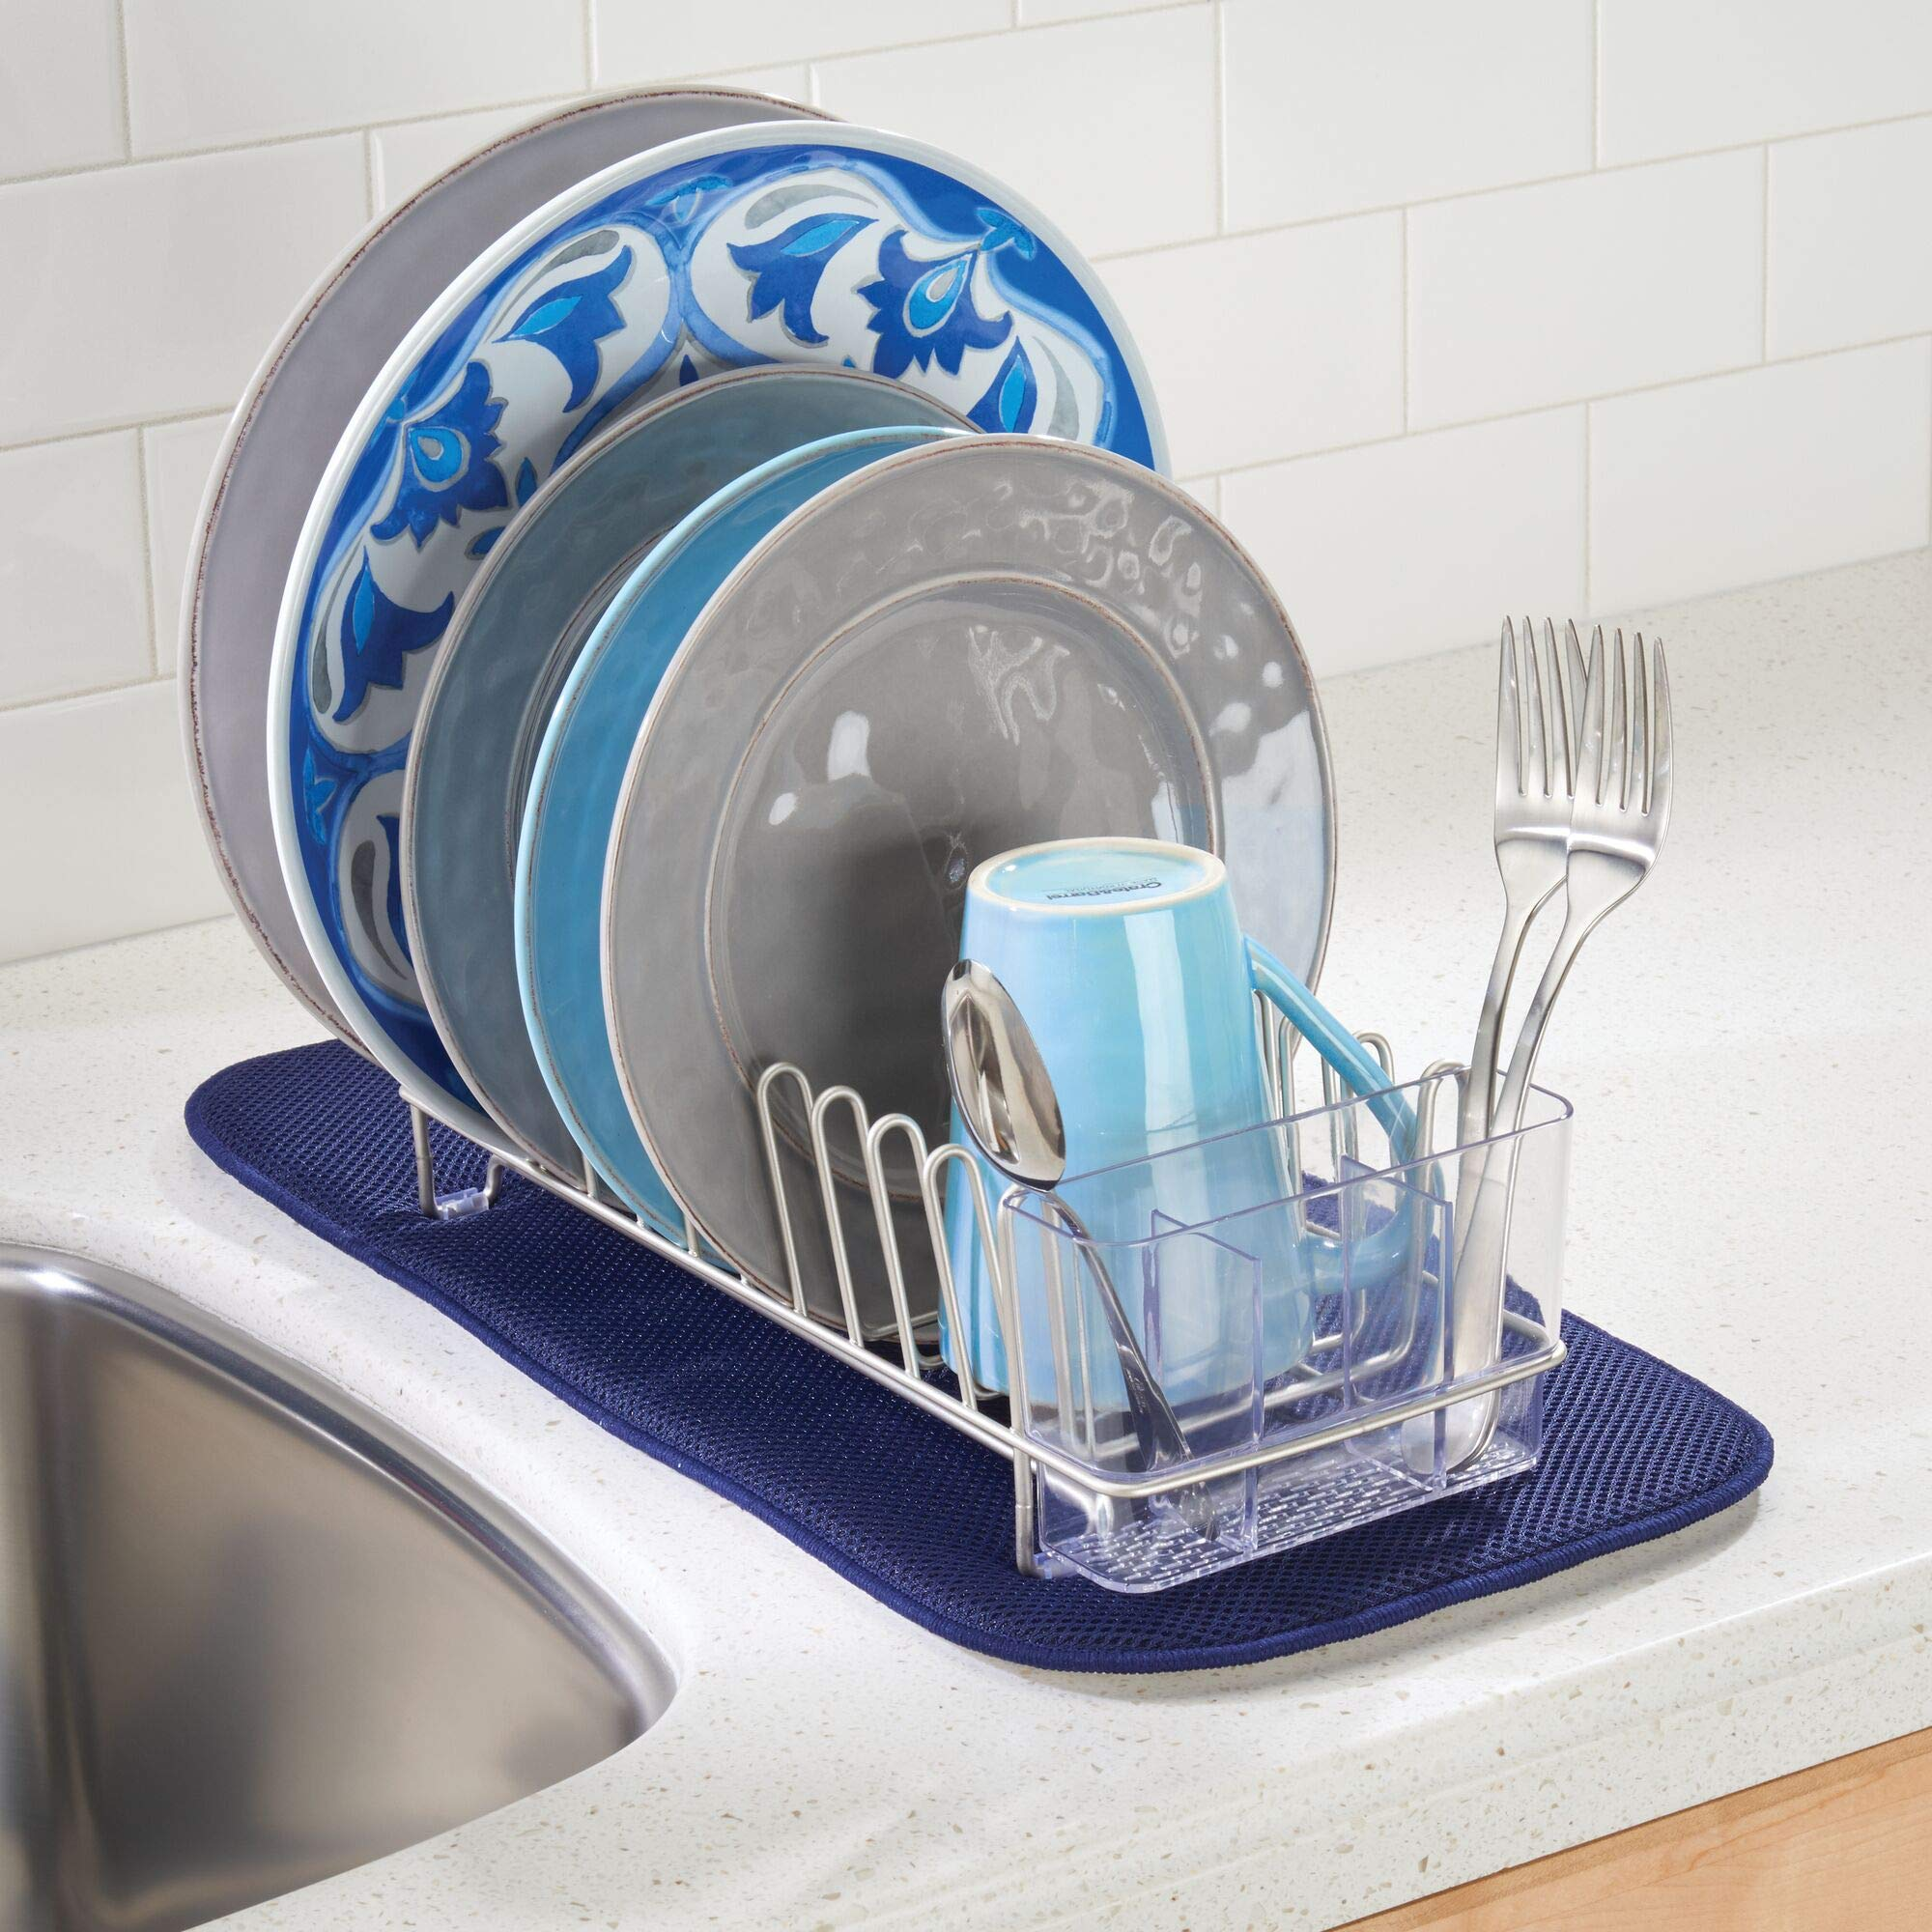 compact metal dish drainer full of dishes